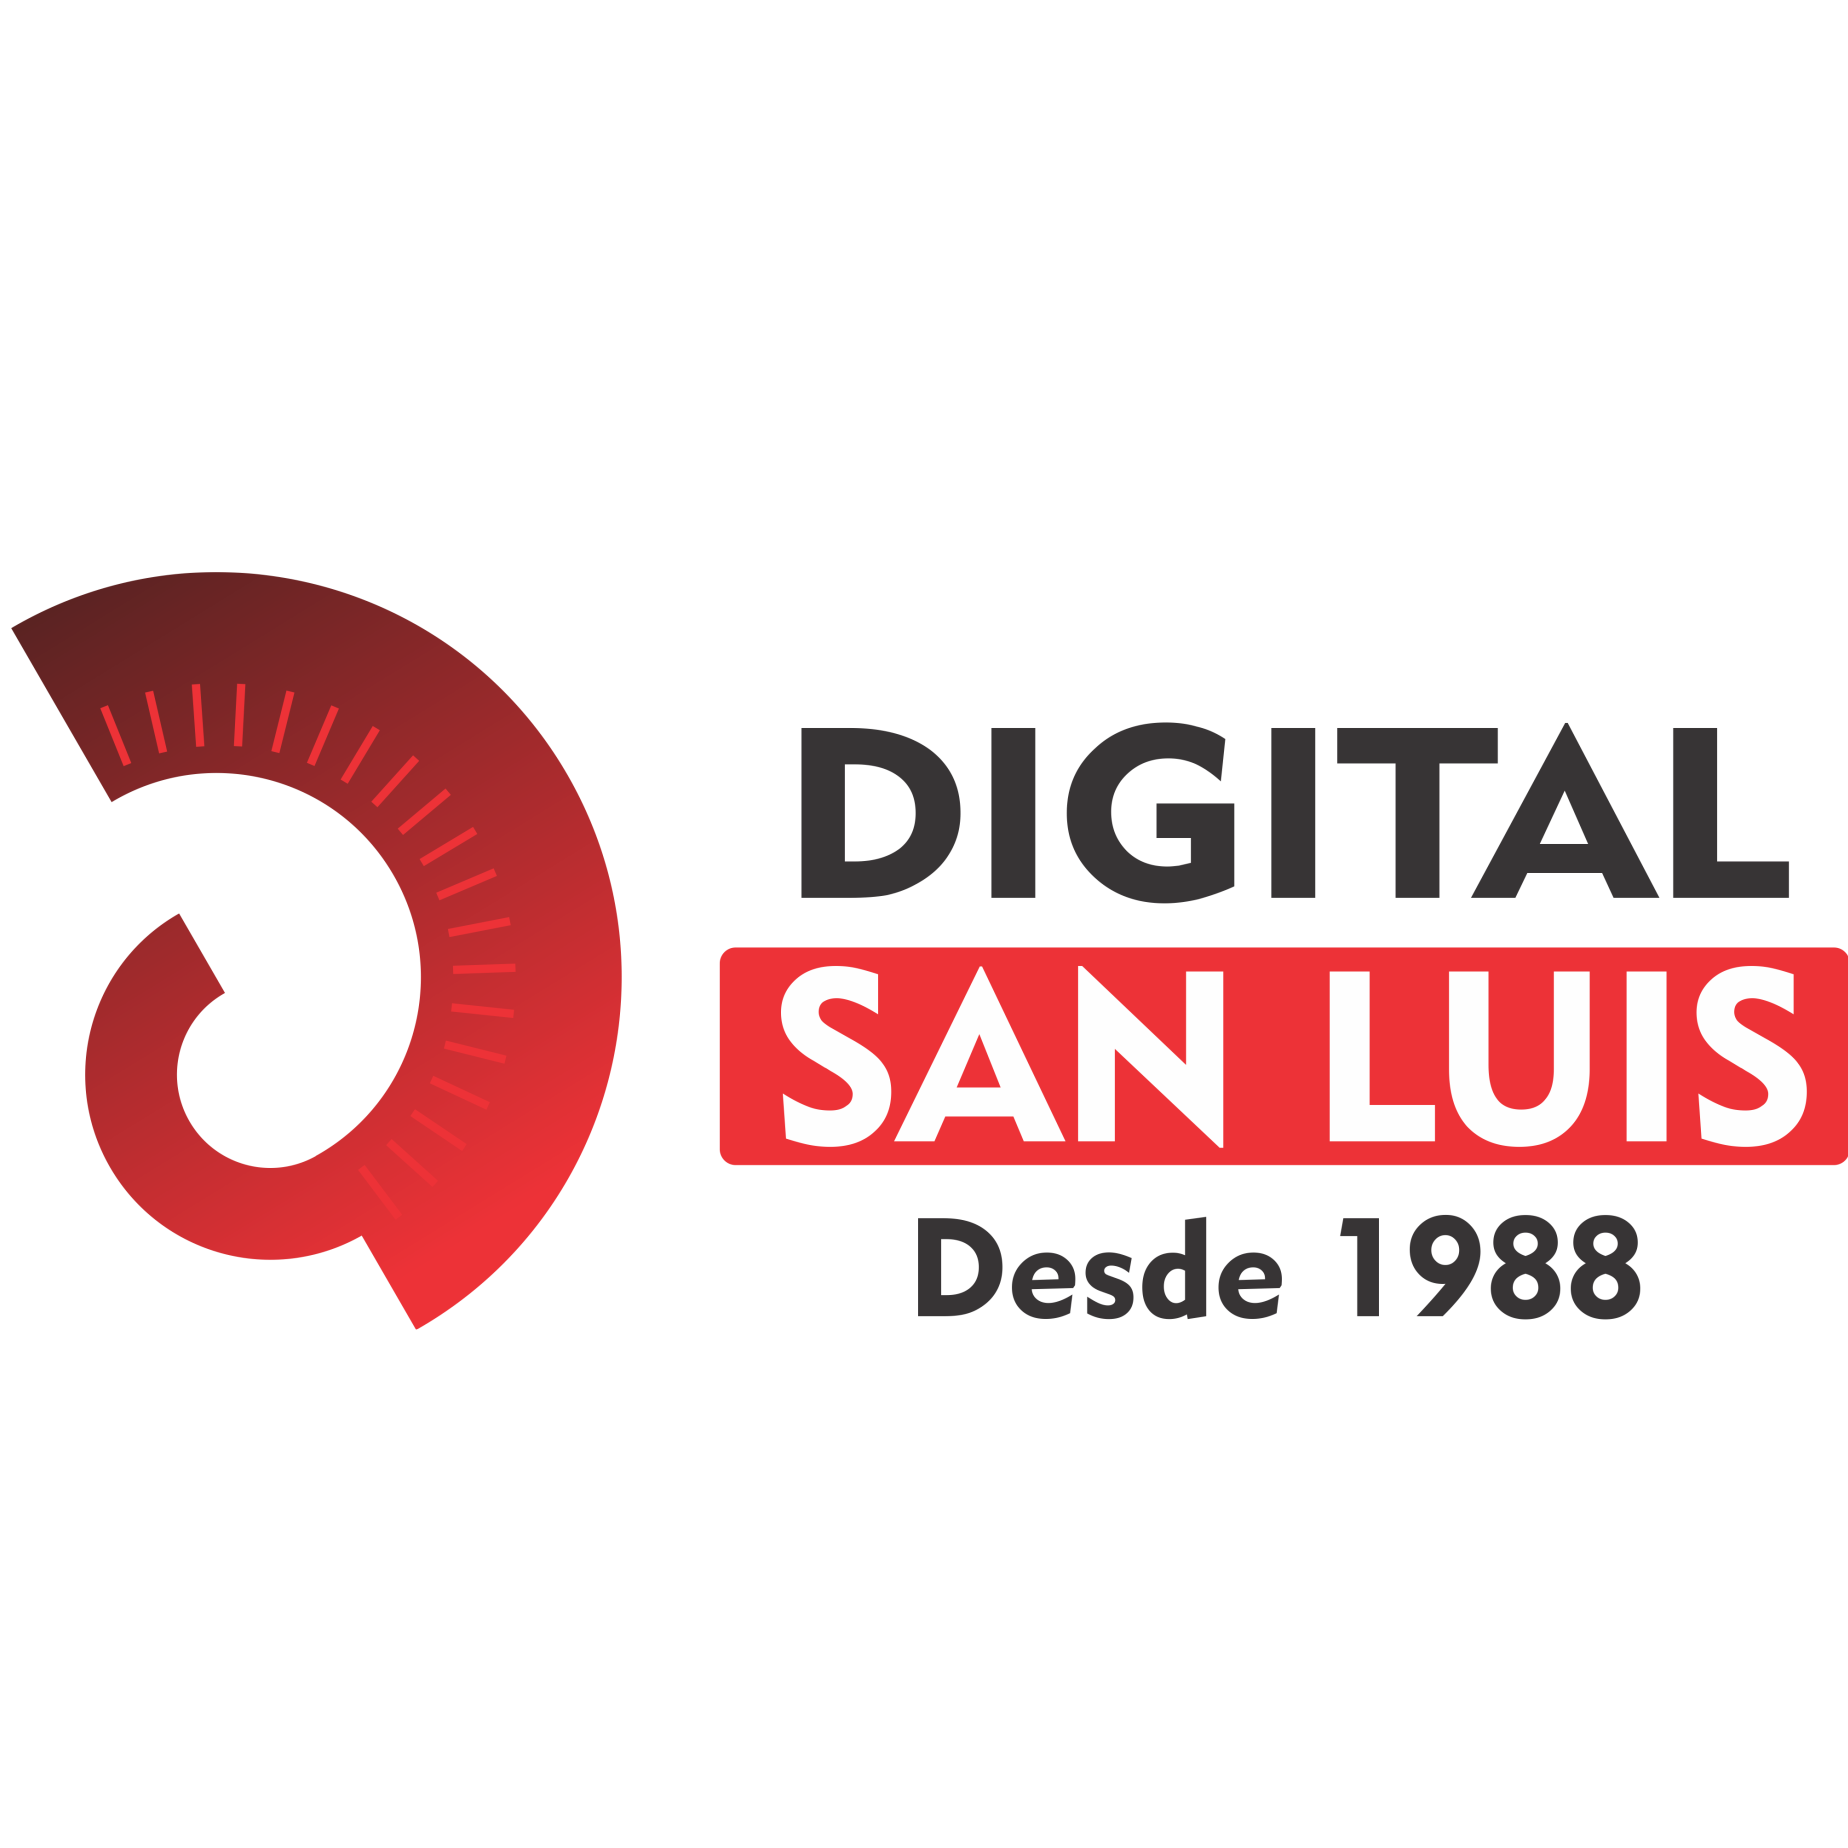 Radio Digital San Luis